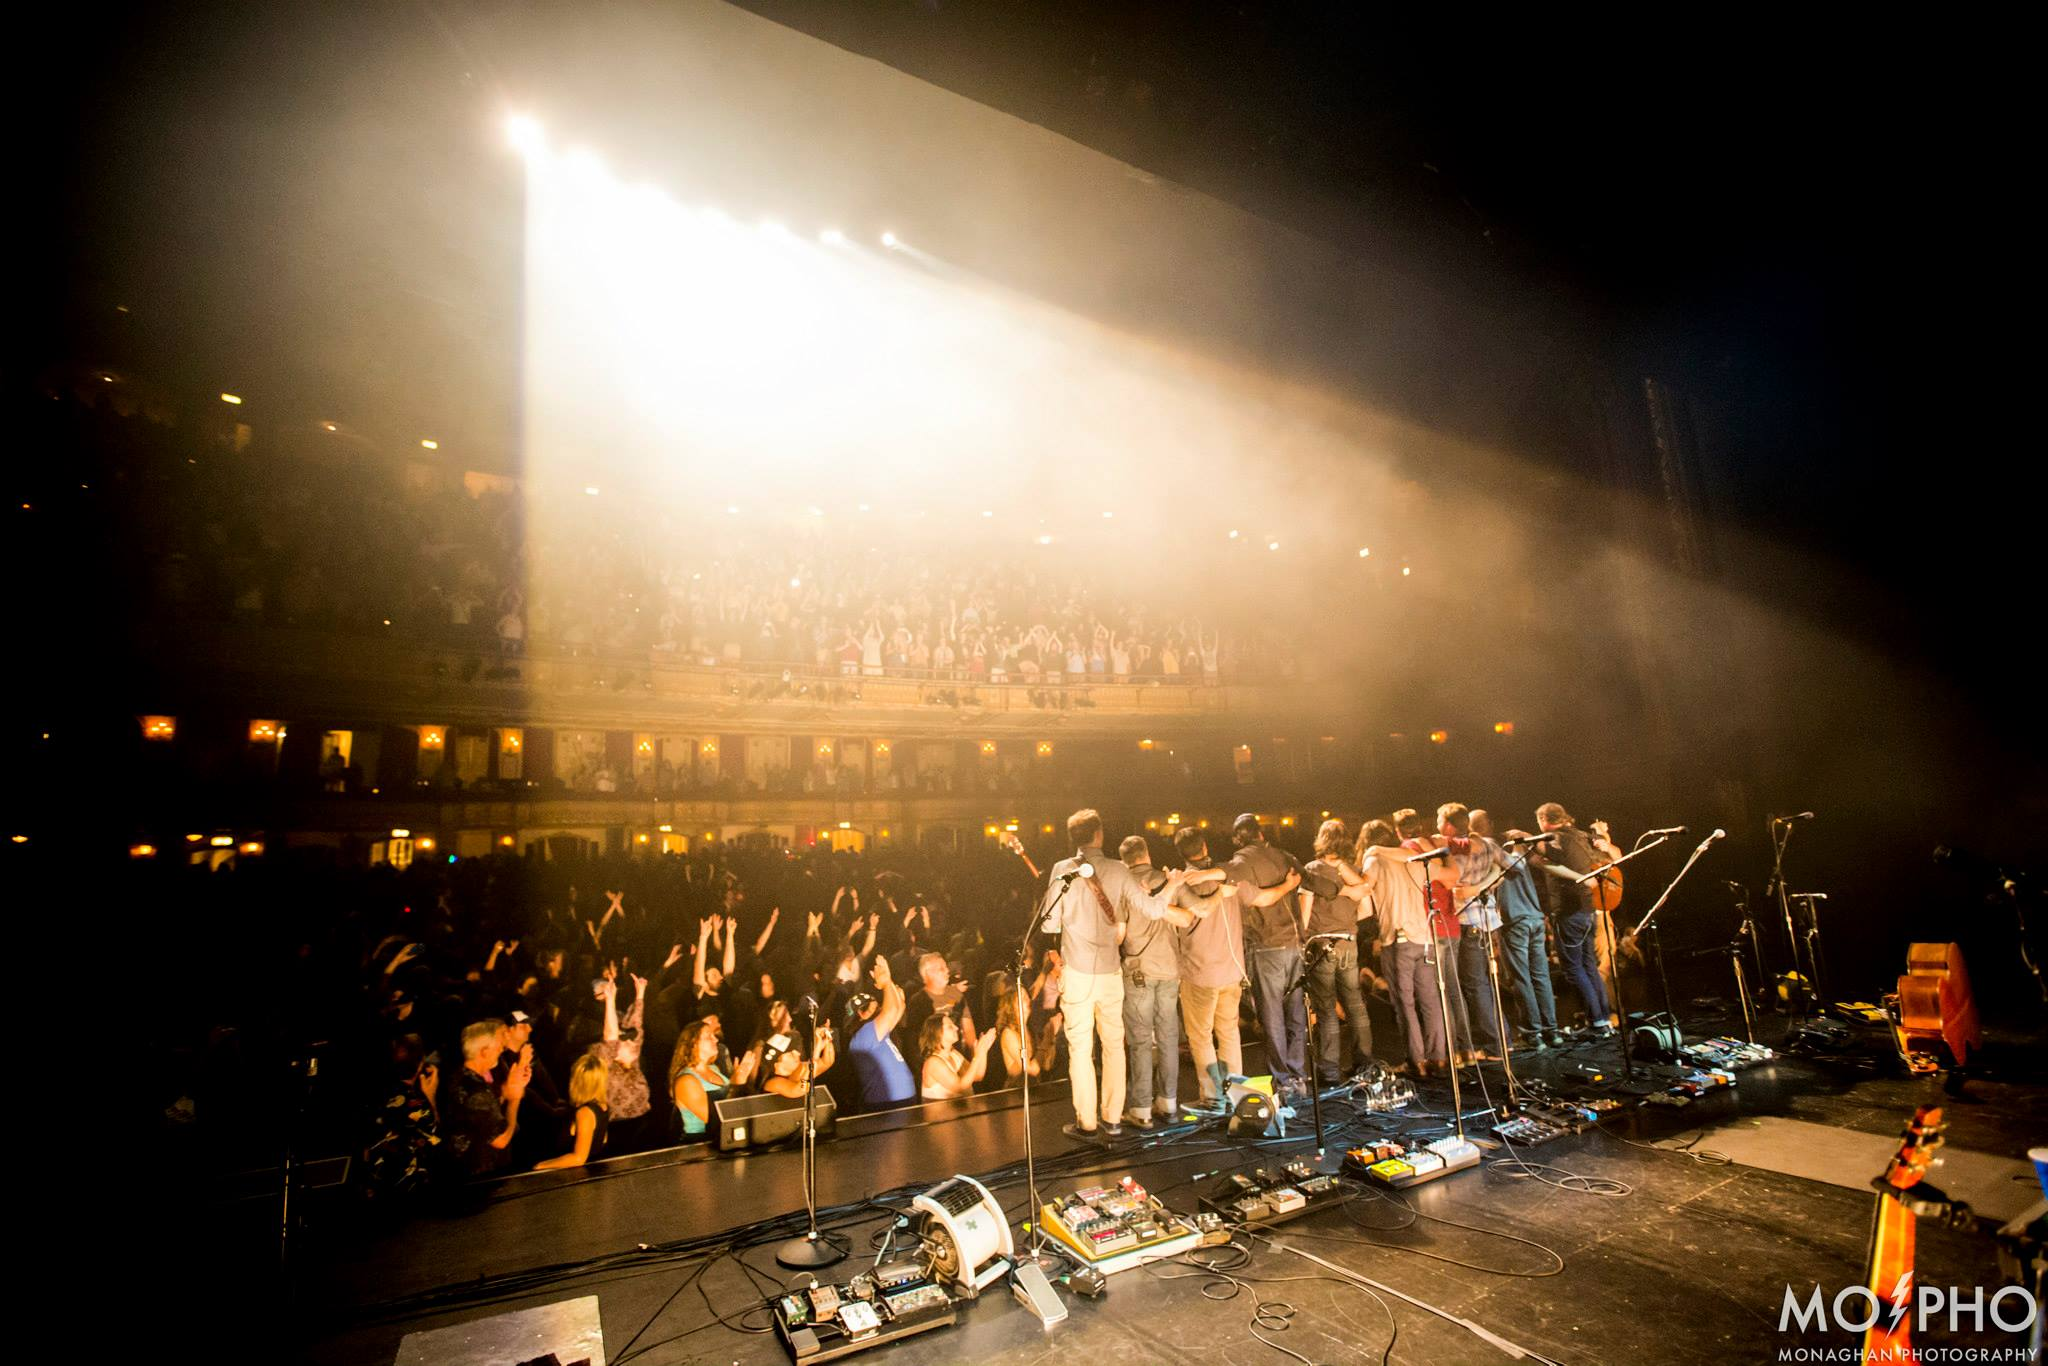 Setlist / Video / Stream / Download | Greensky Bluegrass & Keller Williams Grateful Grass @ Chicago Theatre 7/2/15